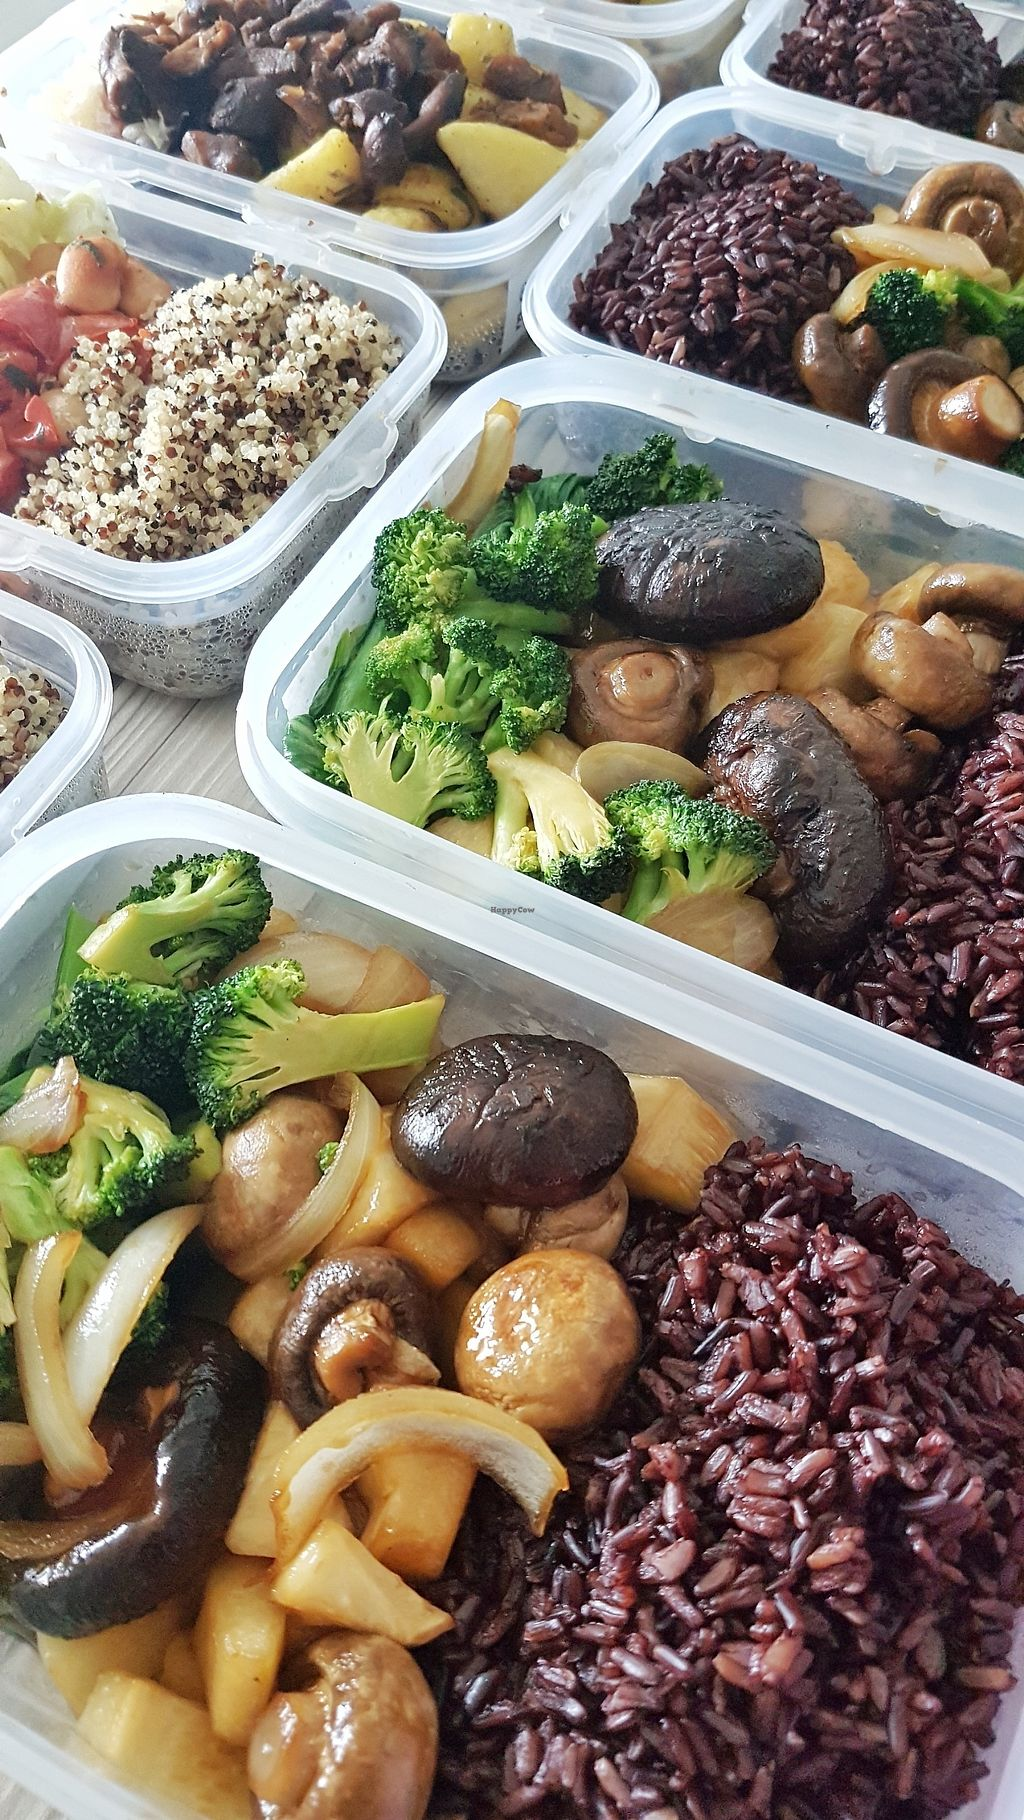 """Photo of Vegan Crush Food Delivery  by <a href=""""/members/profile/VeganCrush"""">VeganCrush</a> <br/>Sautéed portobello mushroom in teriyaki sauce and blueberry rice.   Colorful and healthy meals freshly prepared and delivered to you every Monday.  <br/> December 17, 2017  - <a href='/contact/abuse/image/107331/336434'>Report</a>"""